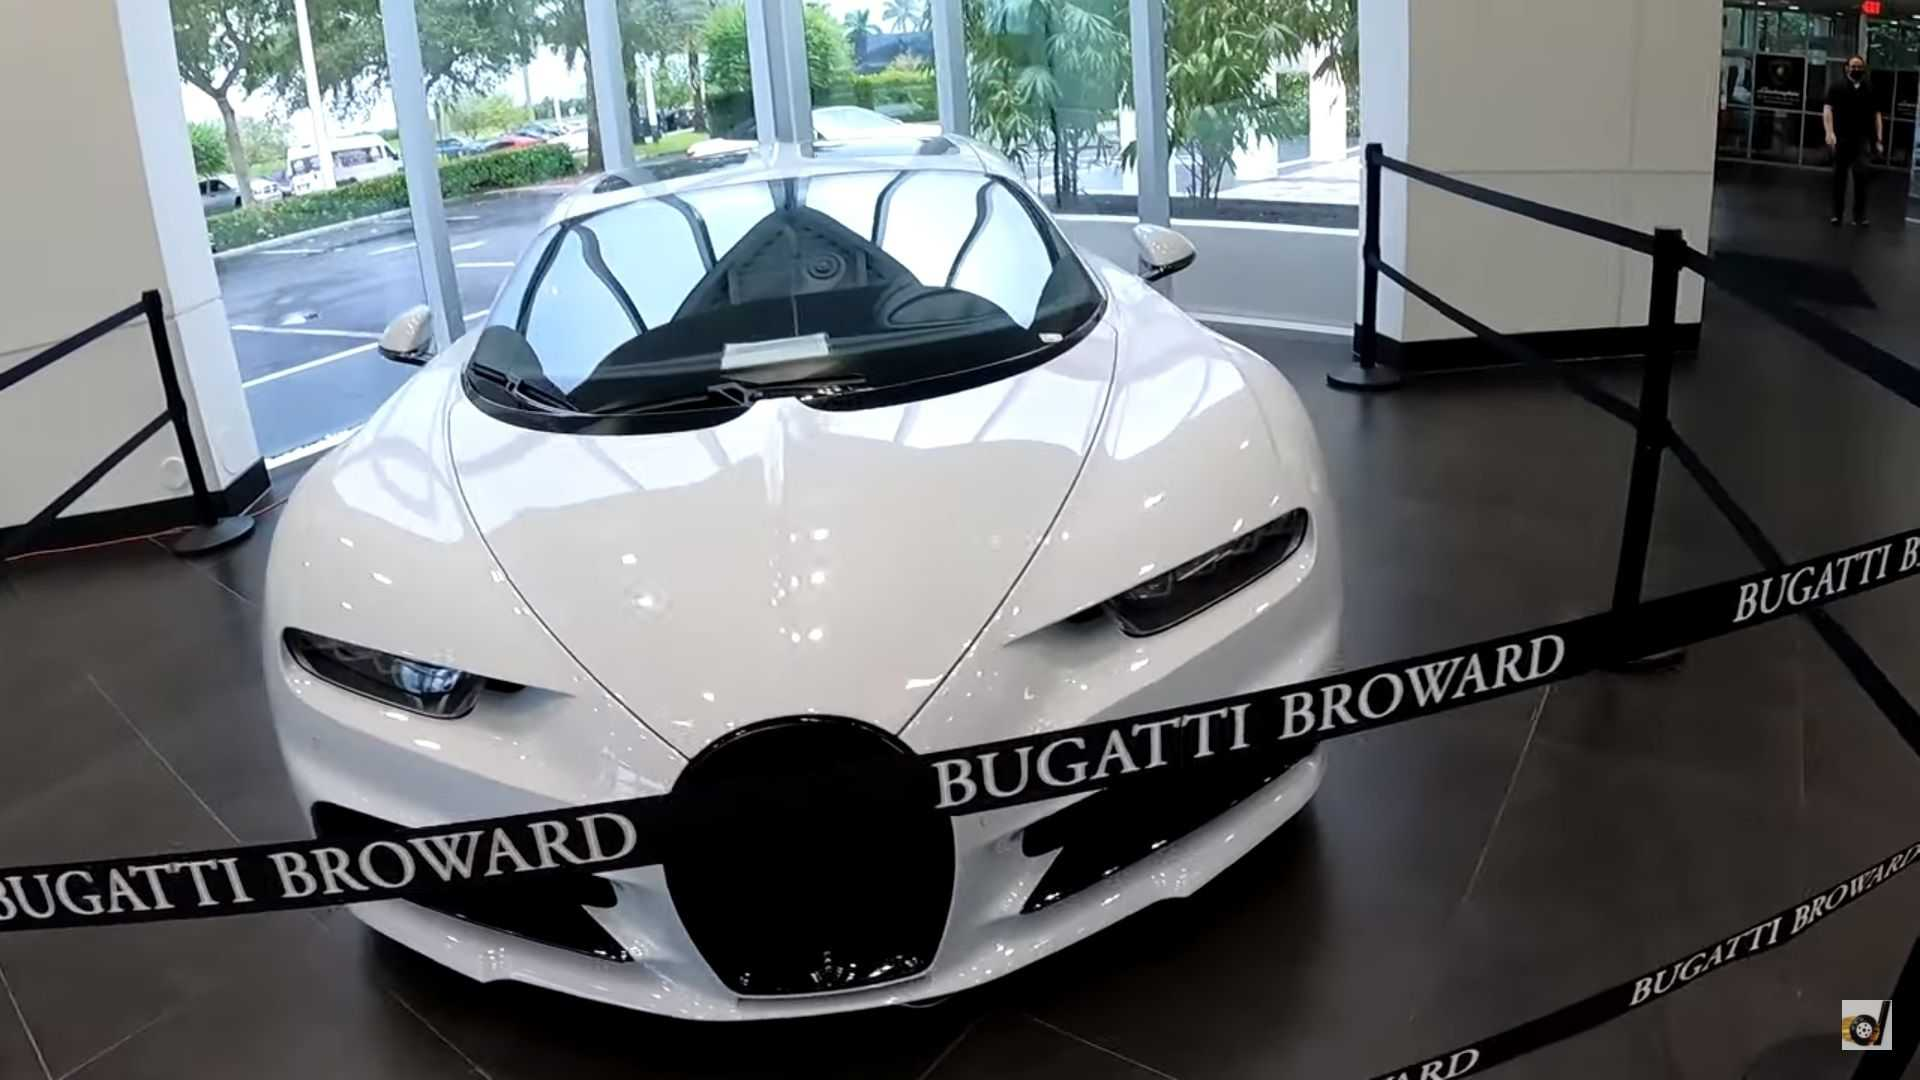 You Can Lease A Used Bugatti Chiron Sport For 66 000 A Month Carsmyfriends Com